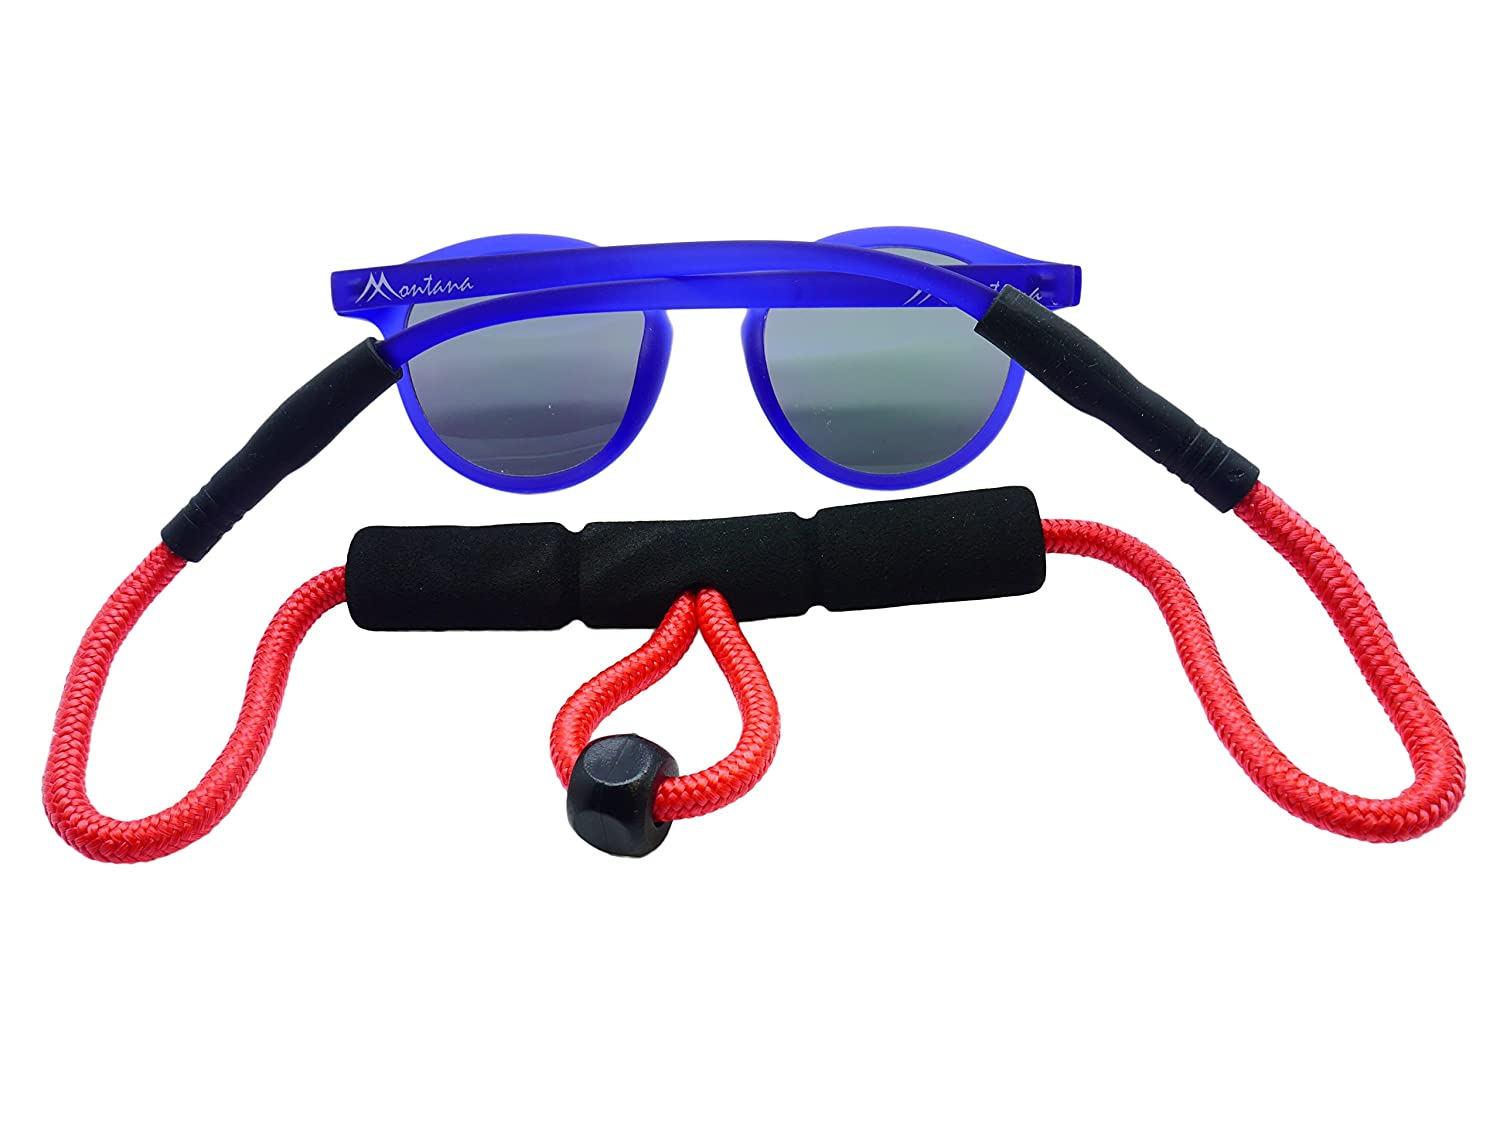 Red GoFloat Floating Sports Strong Durable Glasses Spectacle Sunglasses Cord Holder